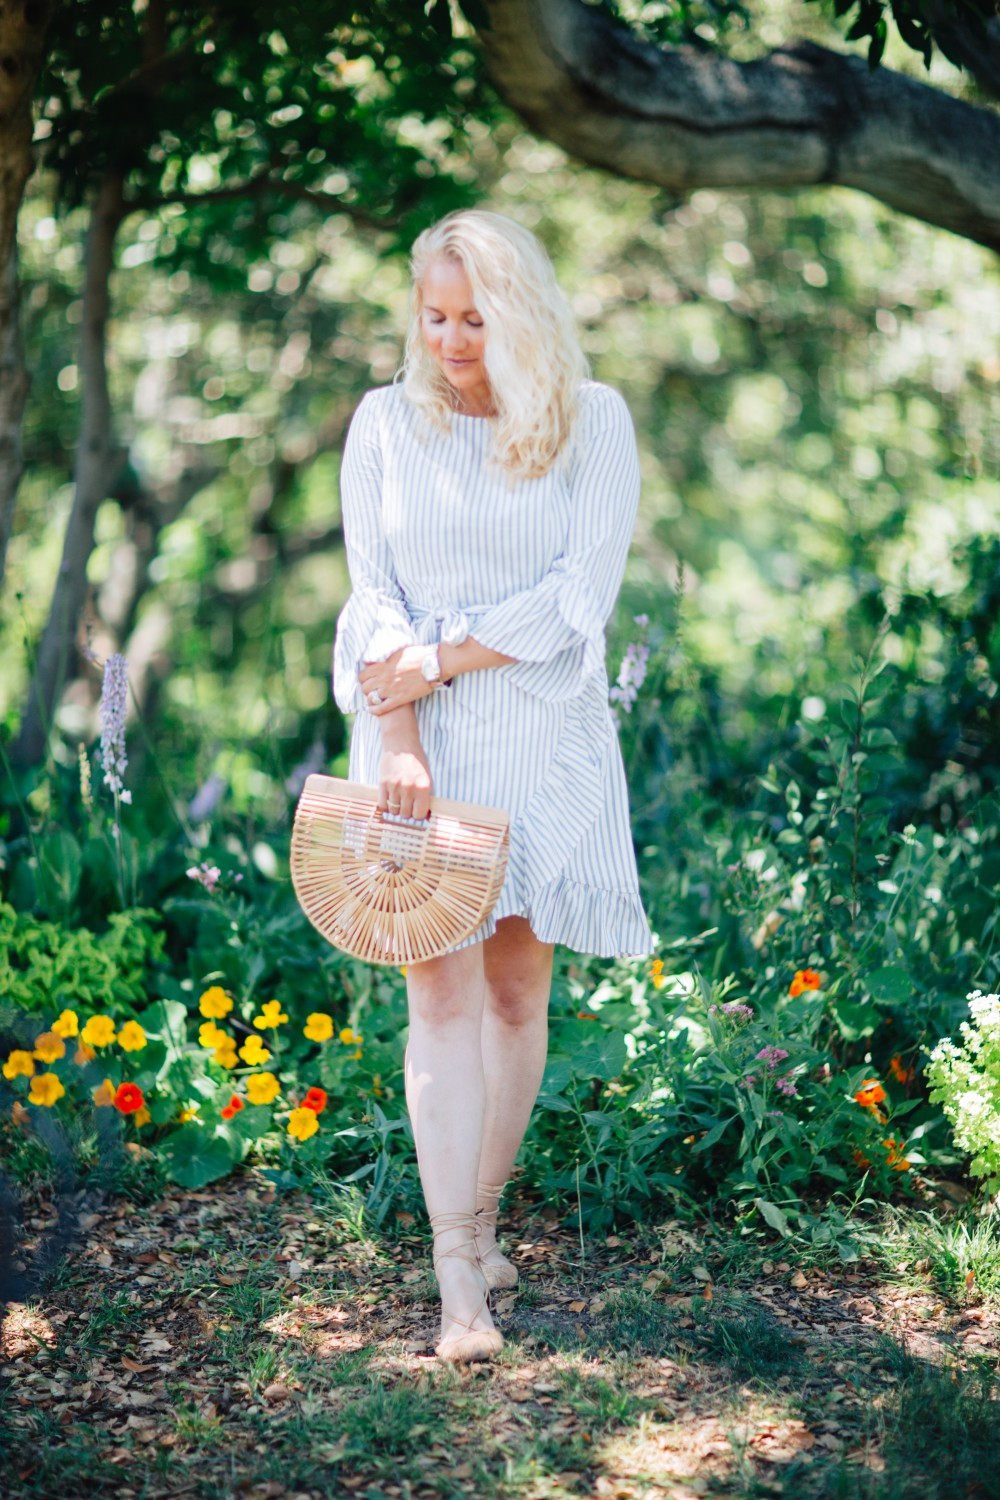 4th of July Picnic Outfit-Outfit Inspiration-Who What Wear for Target-Summer Style-Have Need Want-4th of July-July Fourth Outfit 13